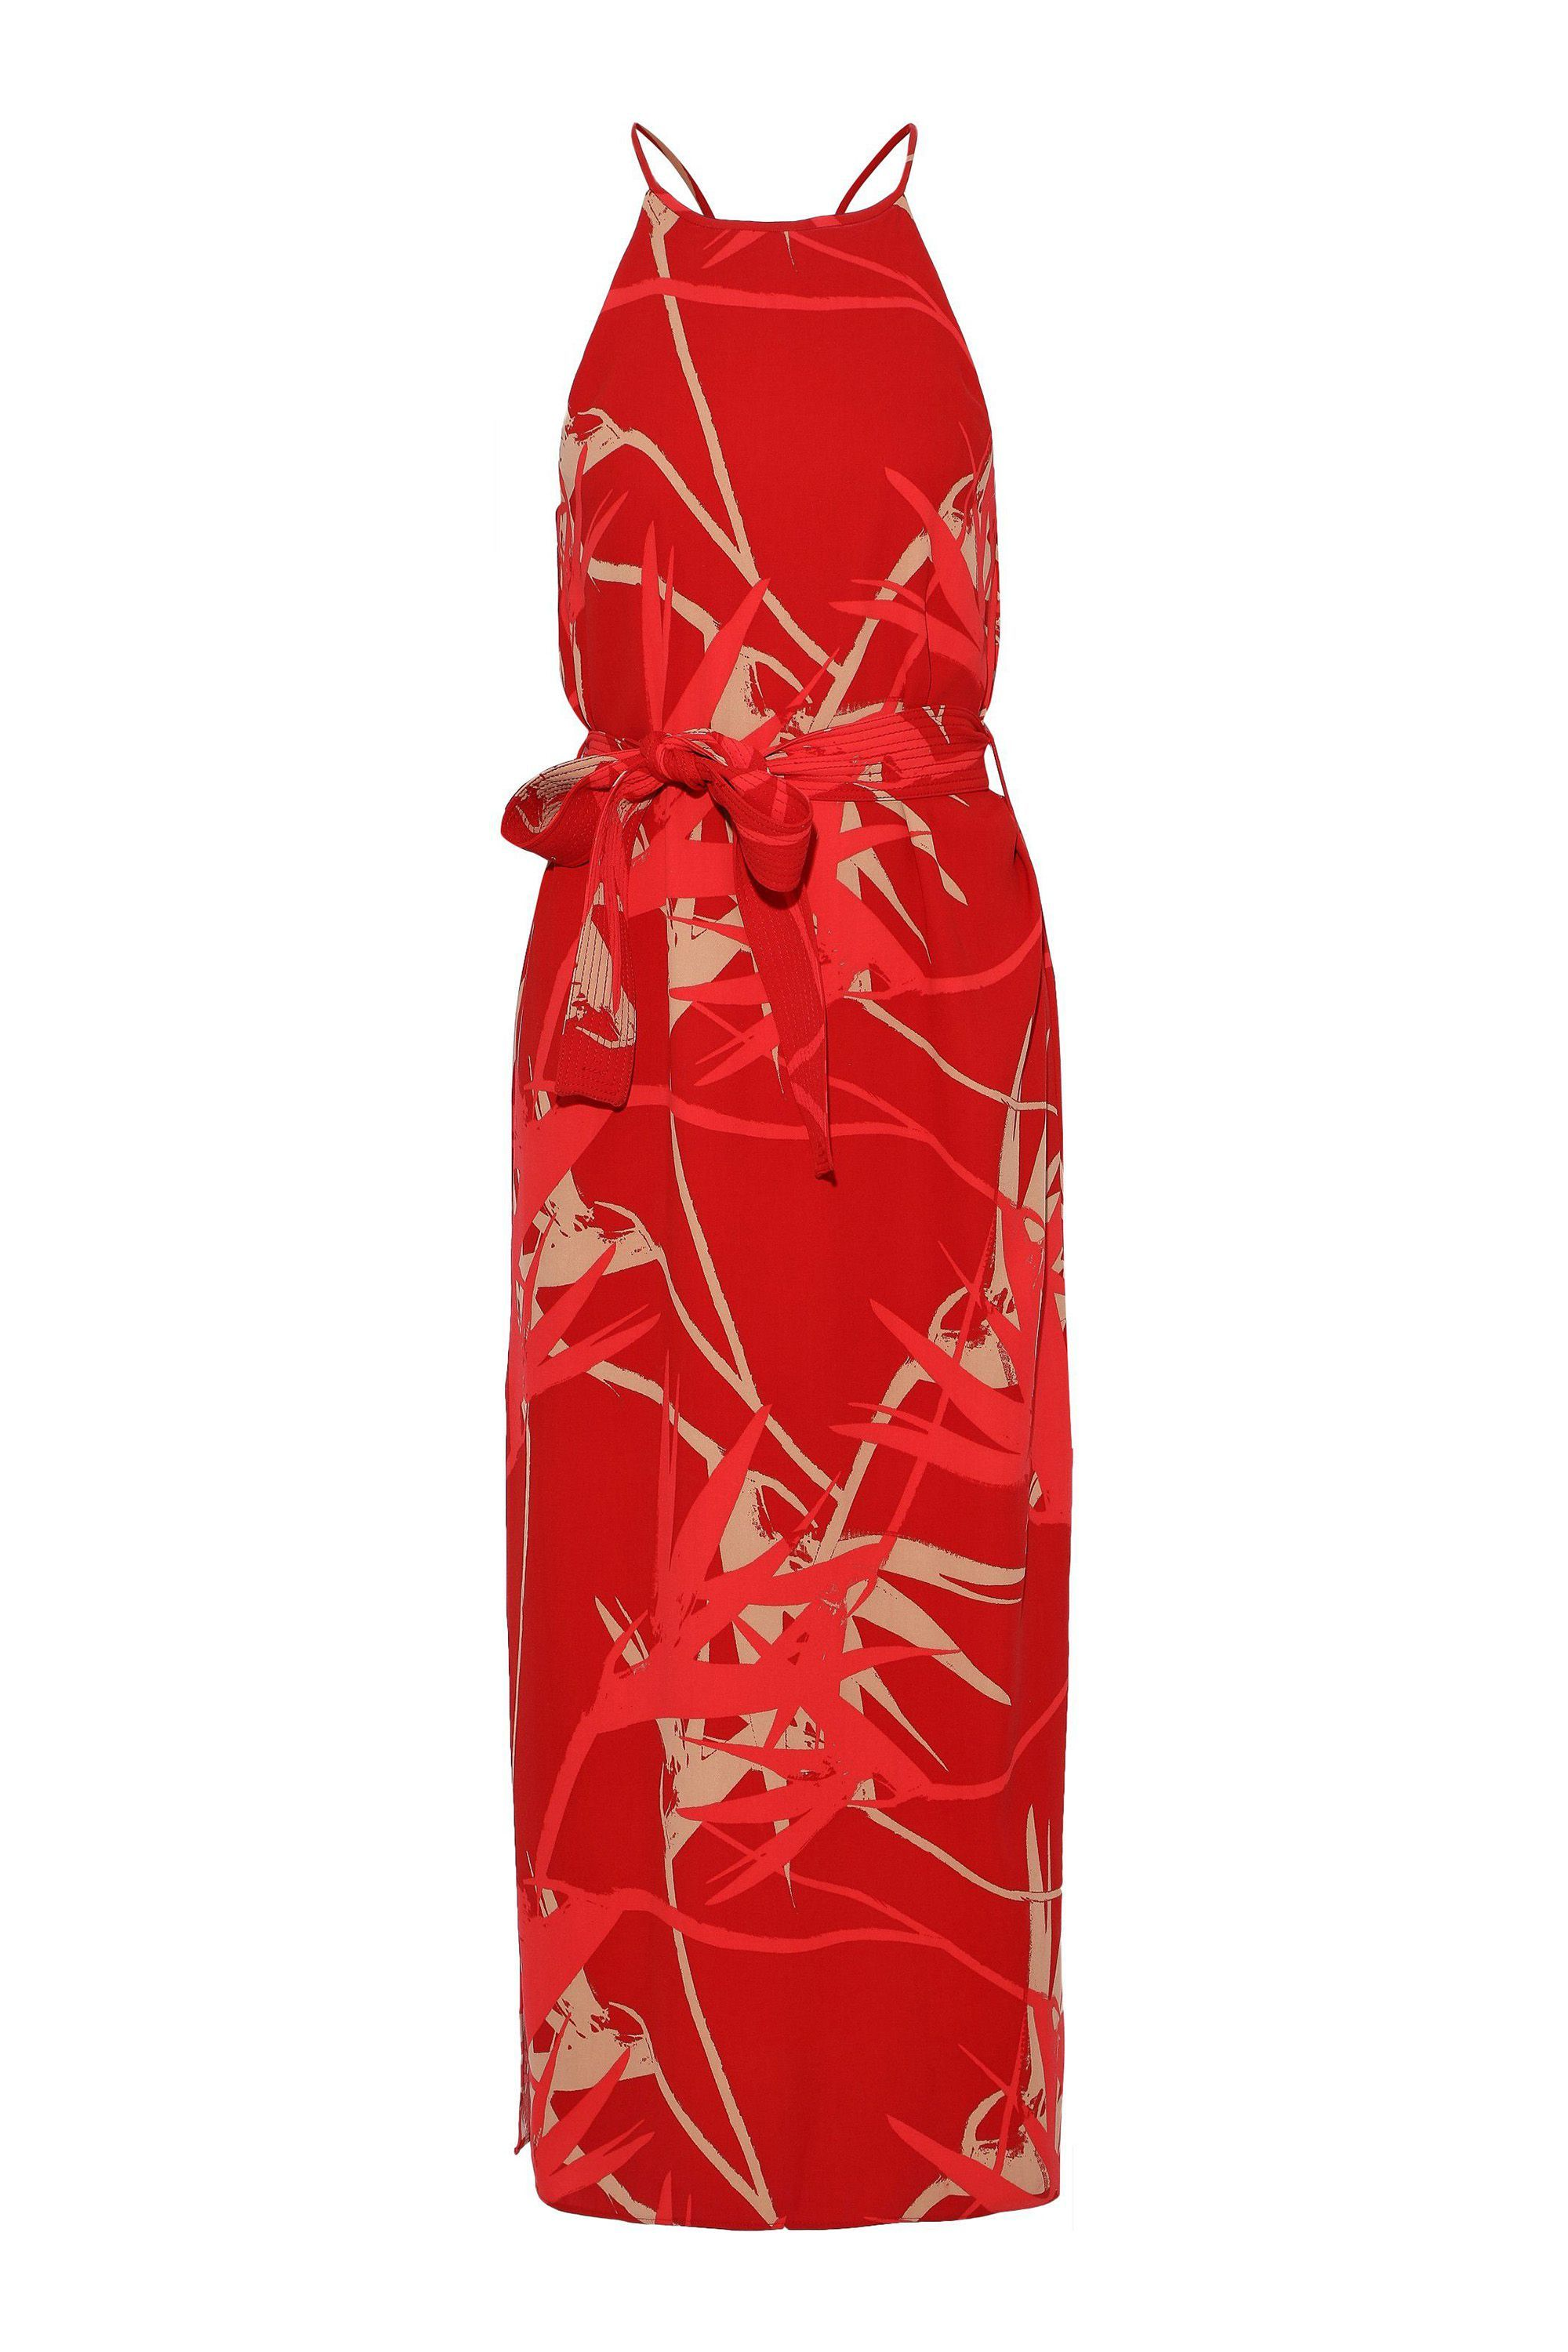 Belted Midi Dress Halston Heritage theoutnet.com $121.00 SHOP NOW A botanical print for those averse to florals.